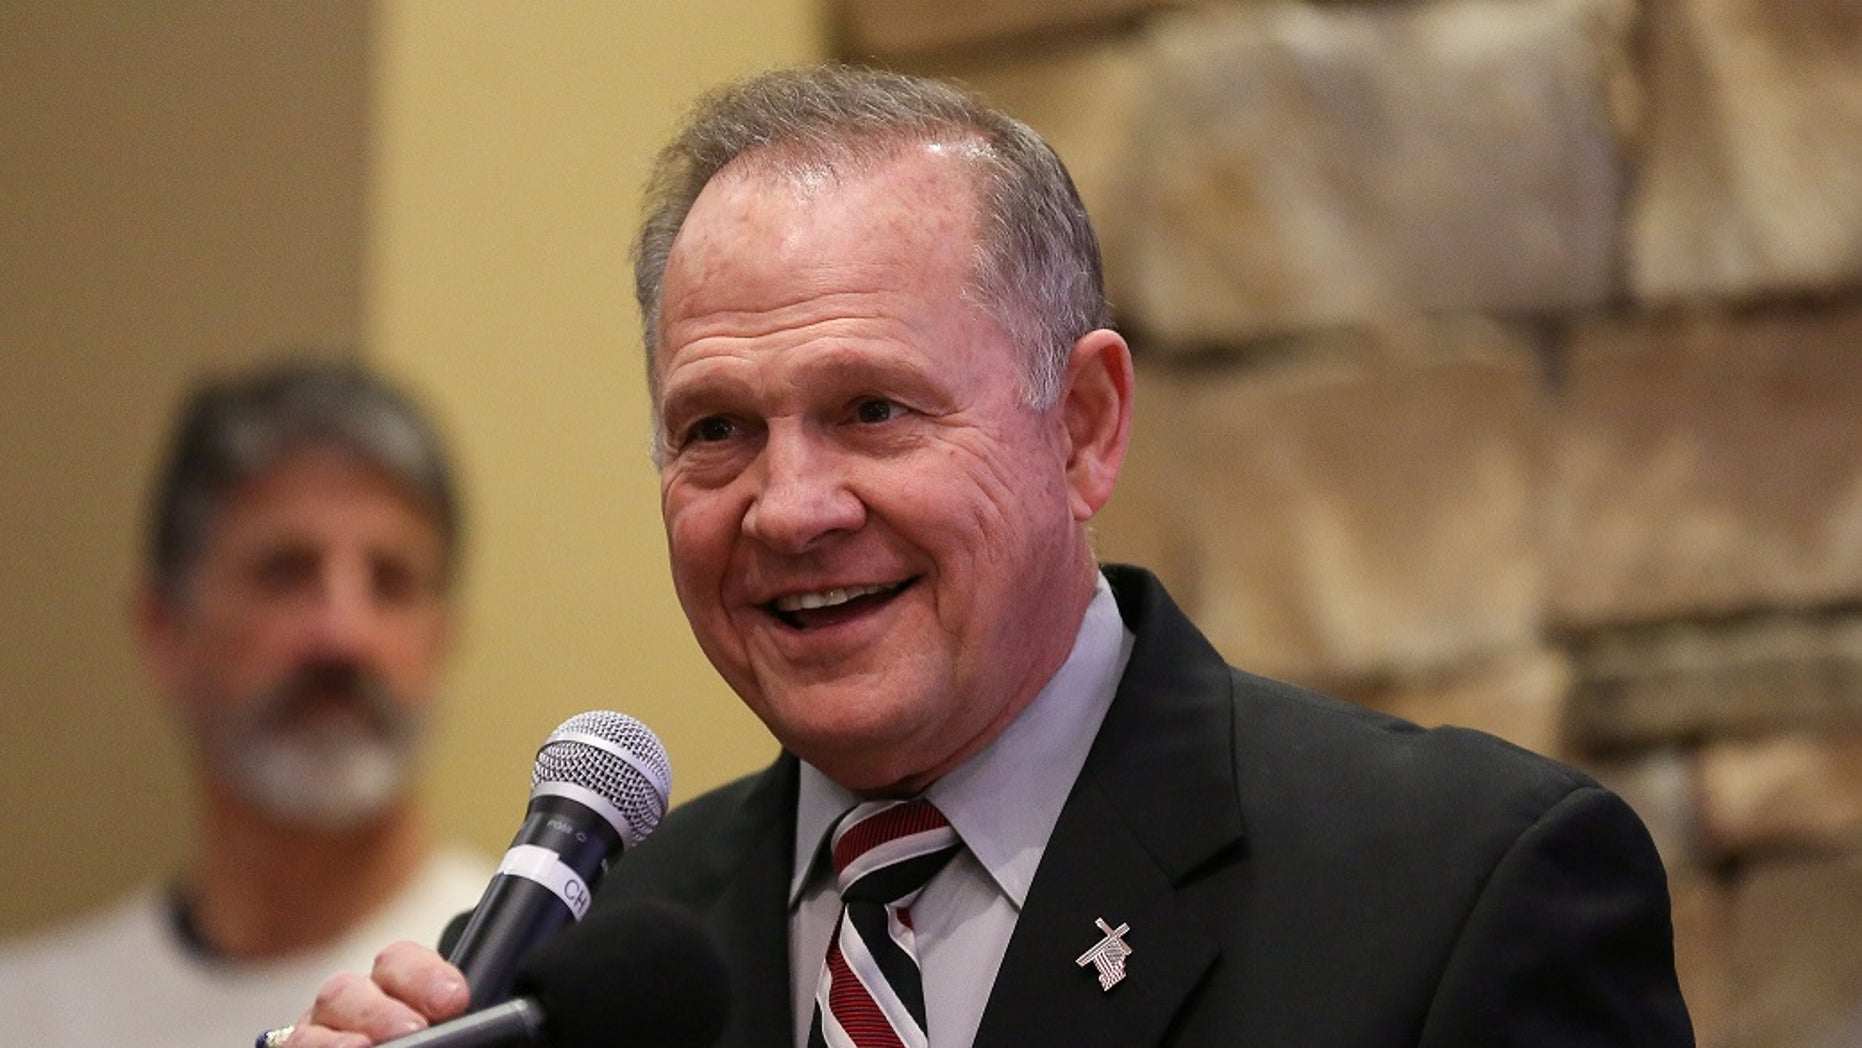 Roy Moore, the GOP nominee for a U.S. Senate seat in Alabama, says he is considering legal action against the Washington Post over allegations of sexual misconduct.